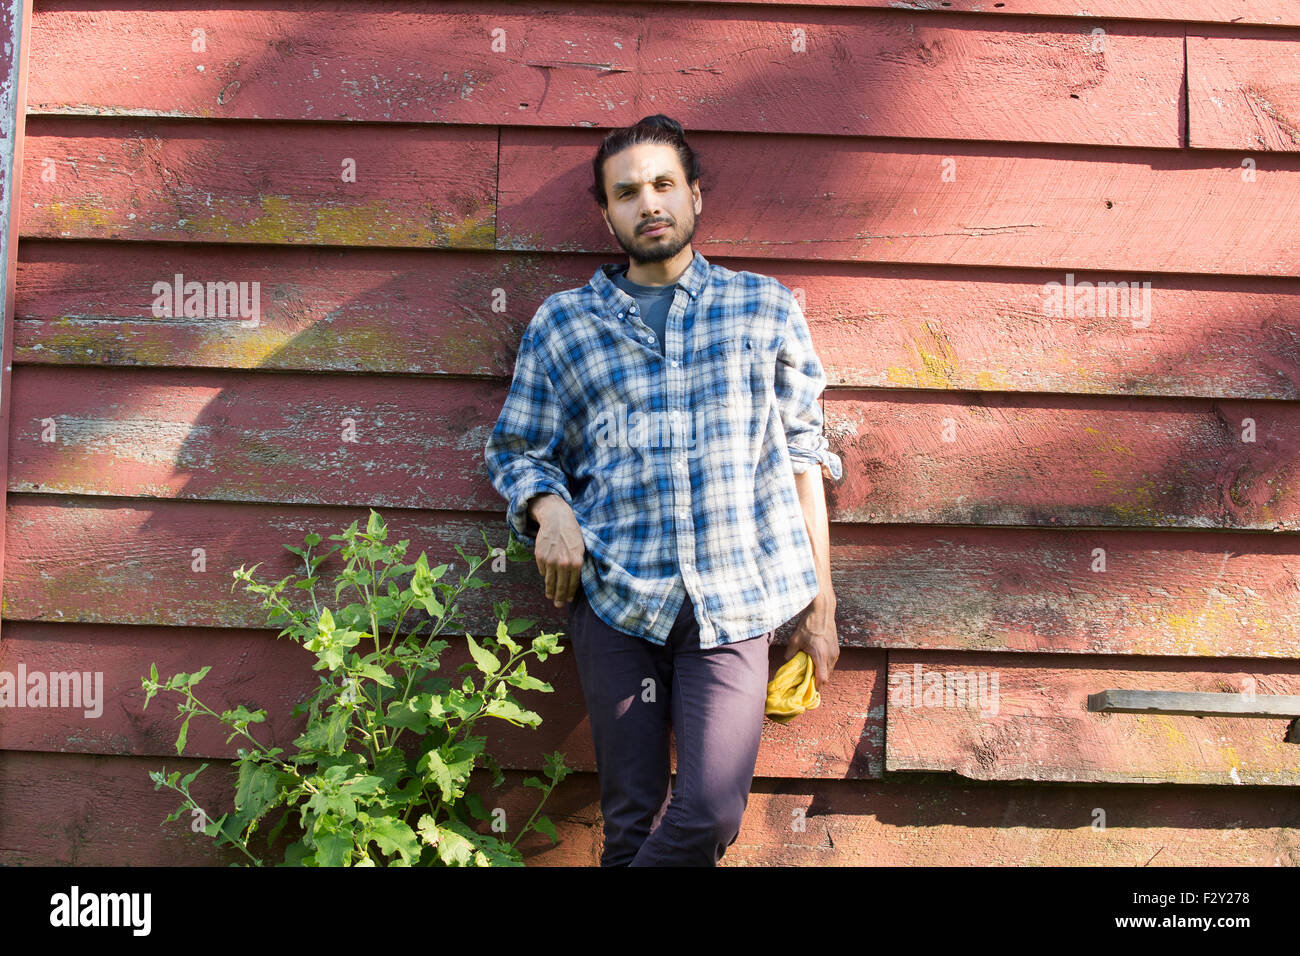 Bearded man wearing a checkered shirt leaning against a wooden wall in the shade. - Stock Image